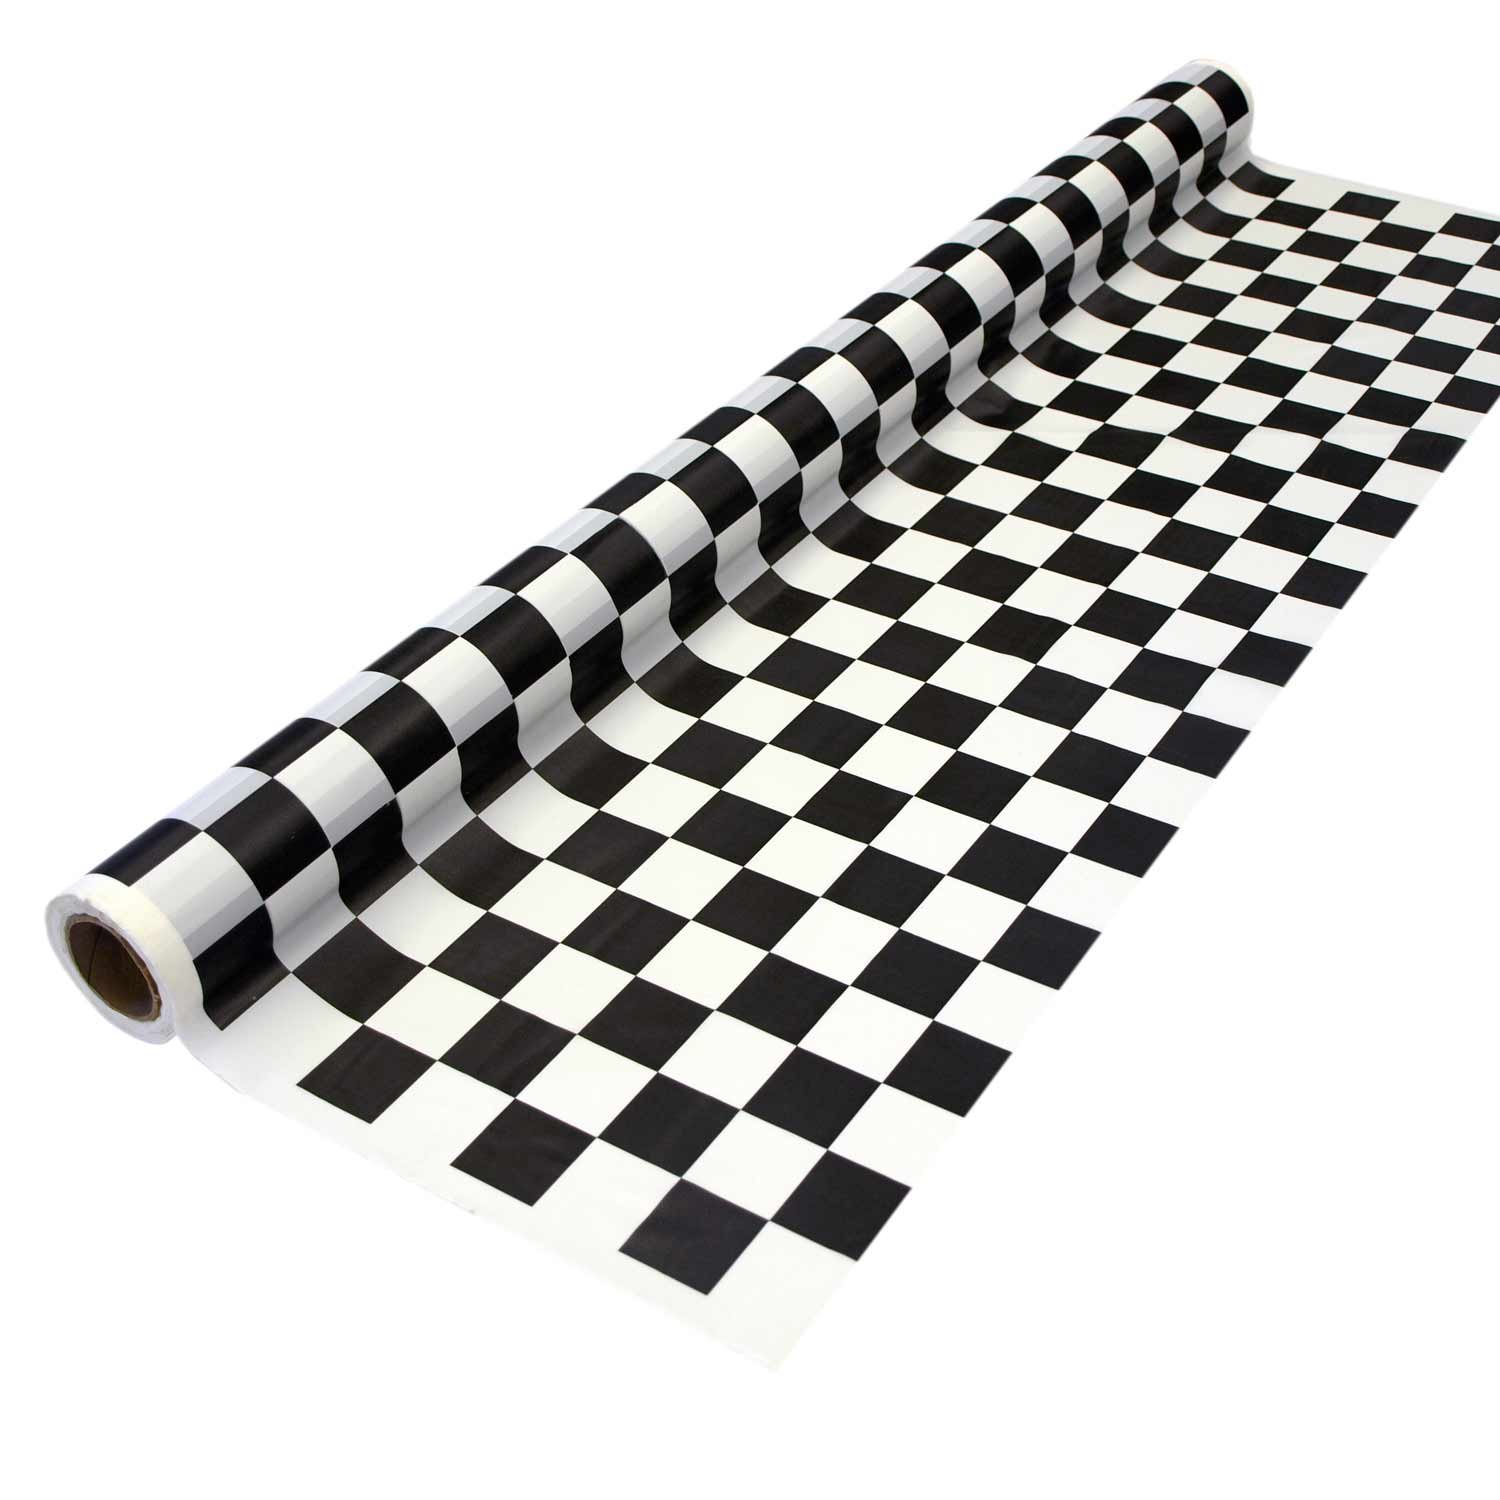 Party Essentials Heavy Duty Printed Plastic Banquet Table Roll Available in 27 Colors, 40'' x 150', Black and White Checks